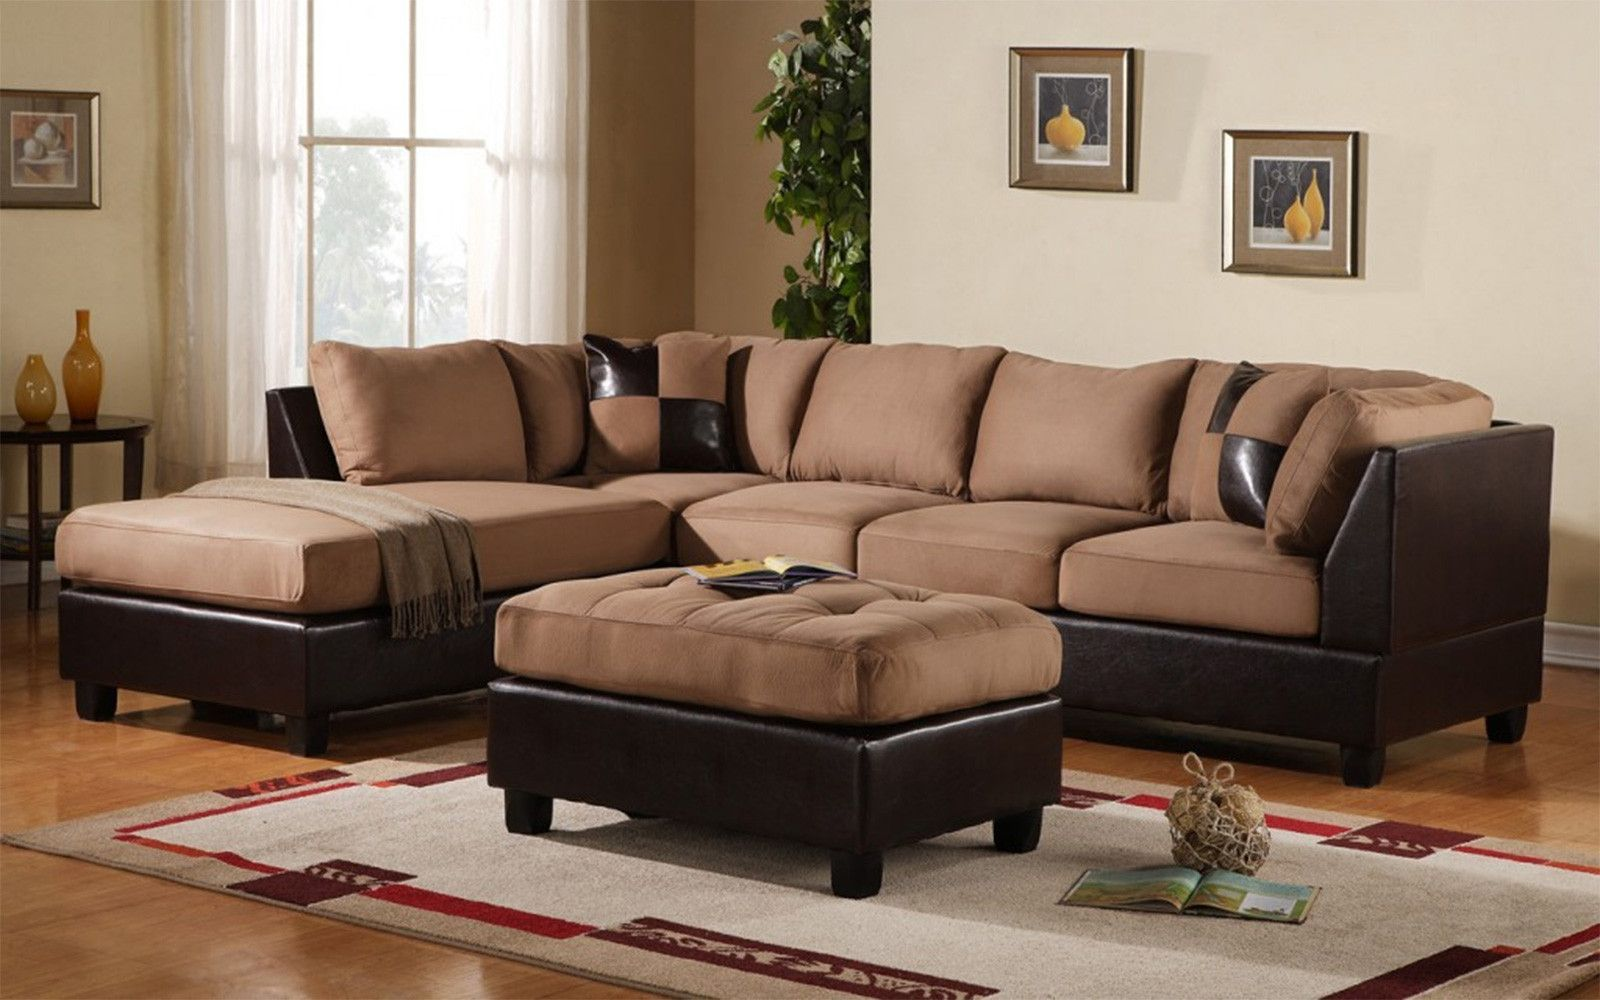 Excellent Koko Microfiber Bonded Leather Sectional Products Gmtry Best Dining Table And Chair Ideas Images Gmtryco